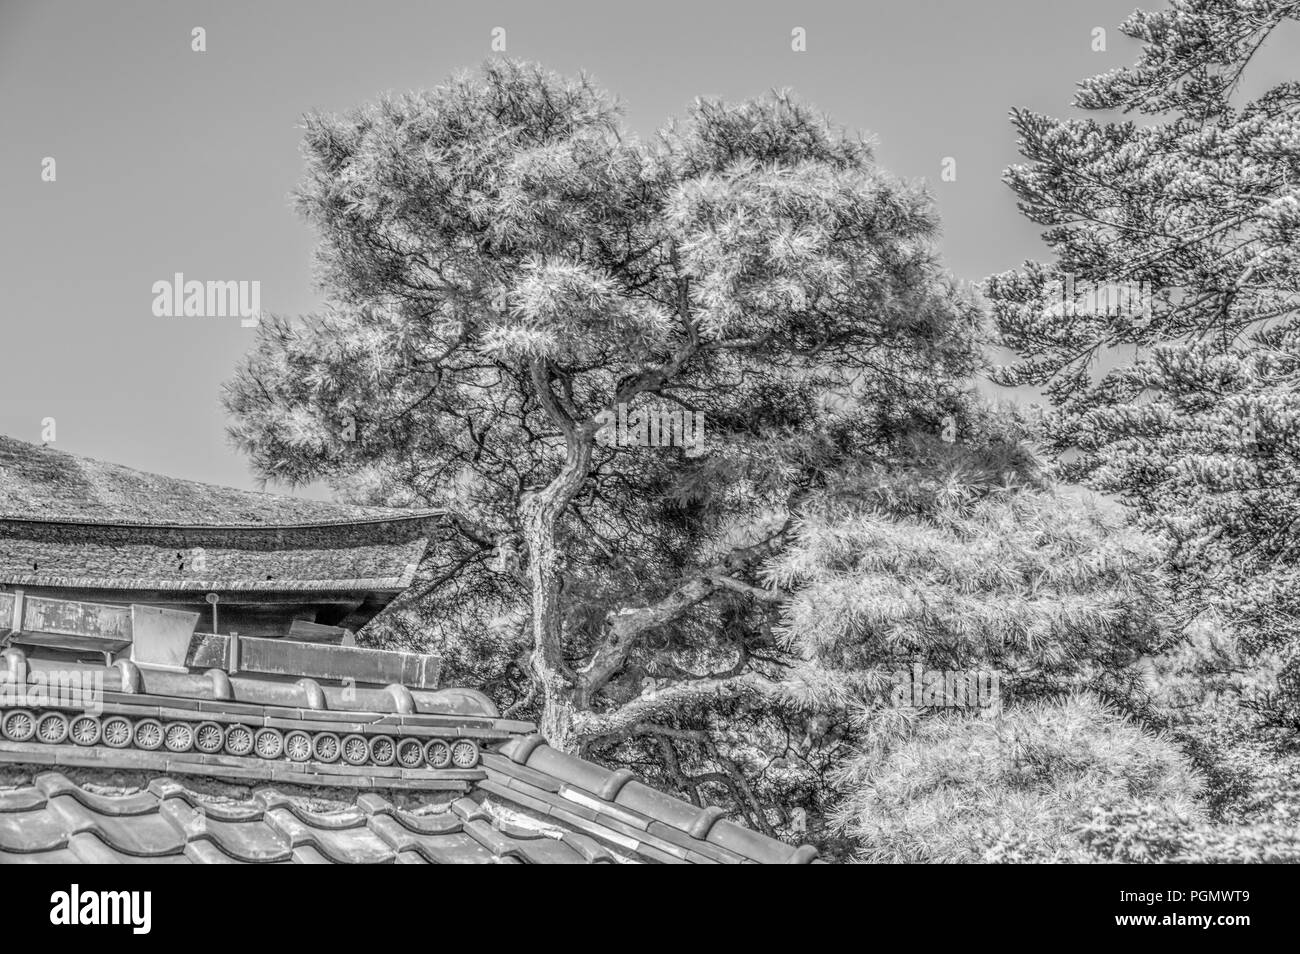 Pine Tree At The Sento Imperial Palace At Kyoto Japan 2015 In Black And White - Stock Image